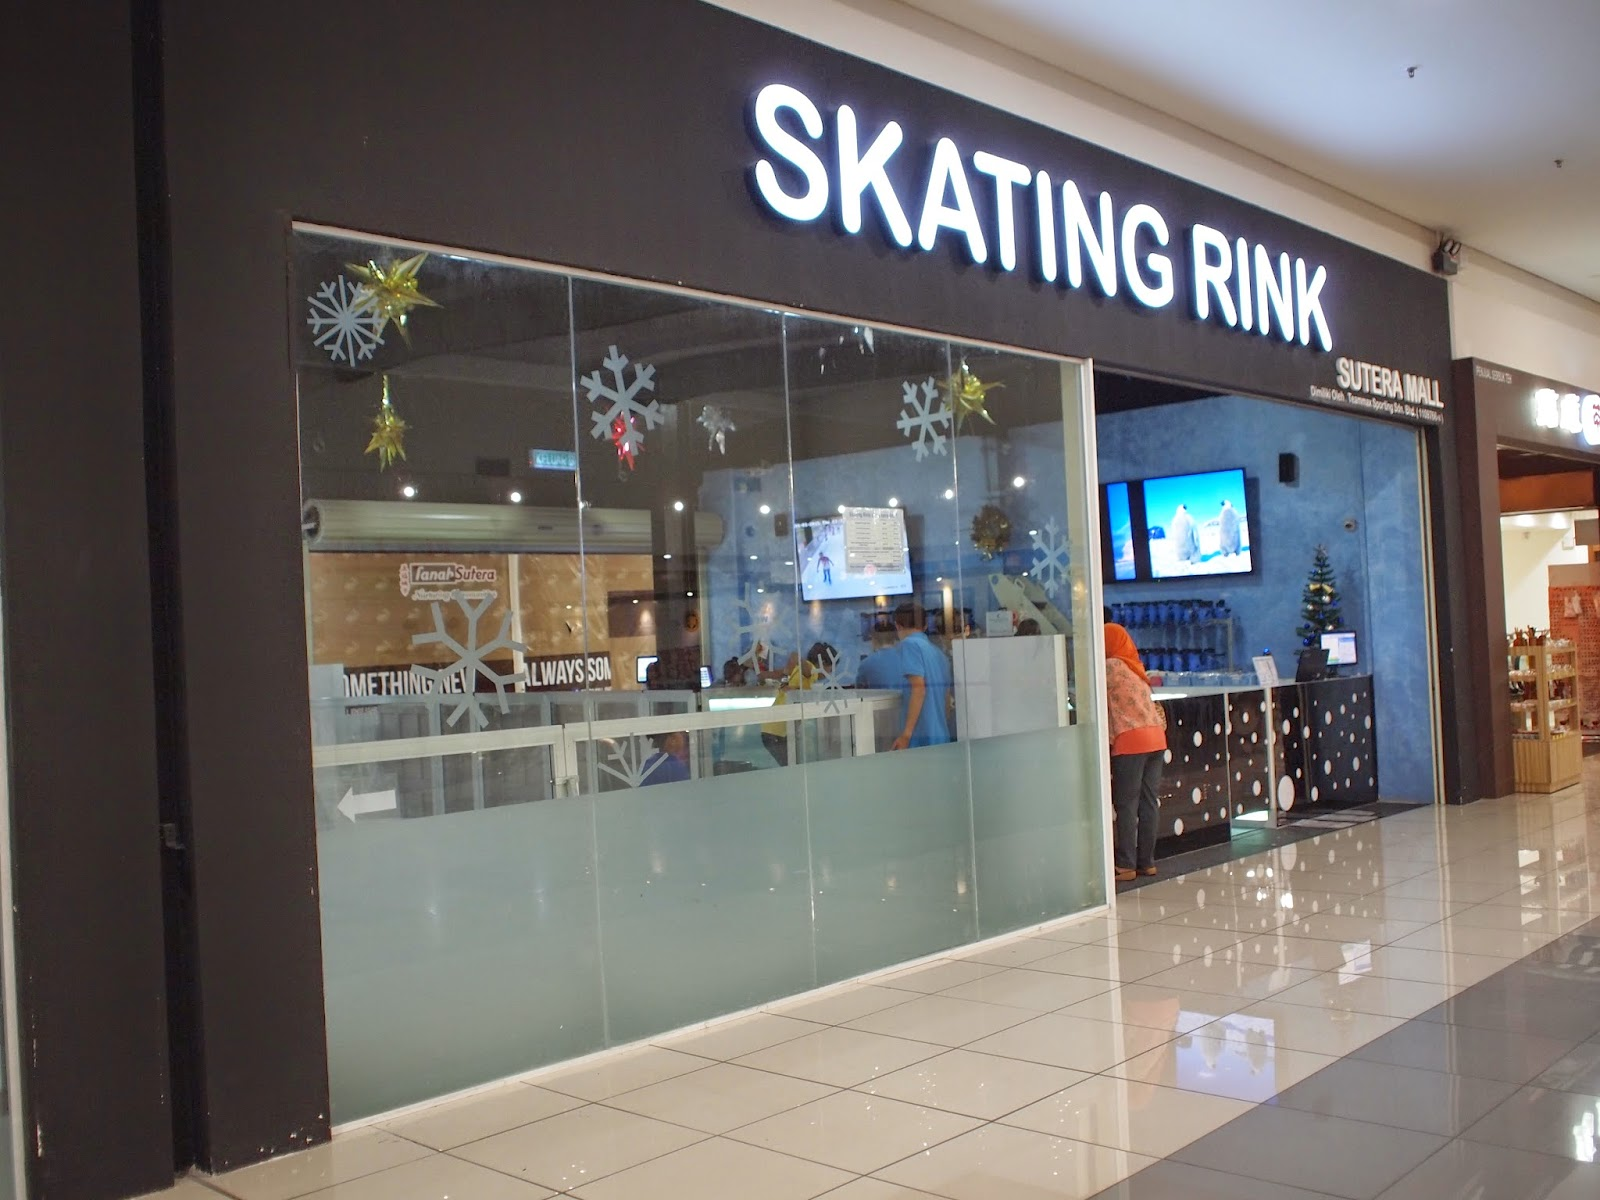 Skating Rink, Sutera Mall